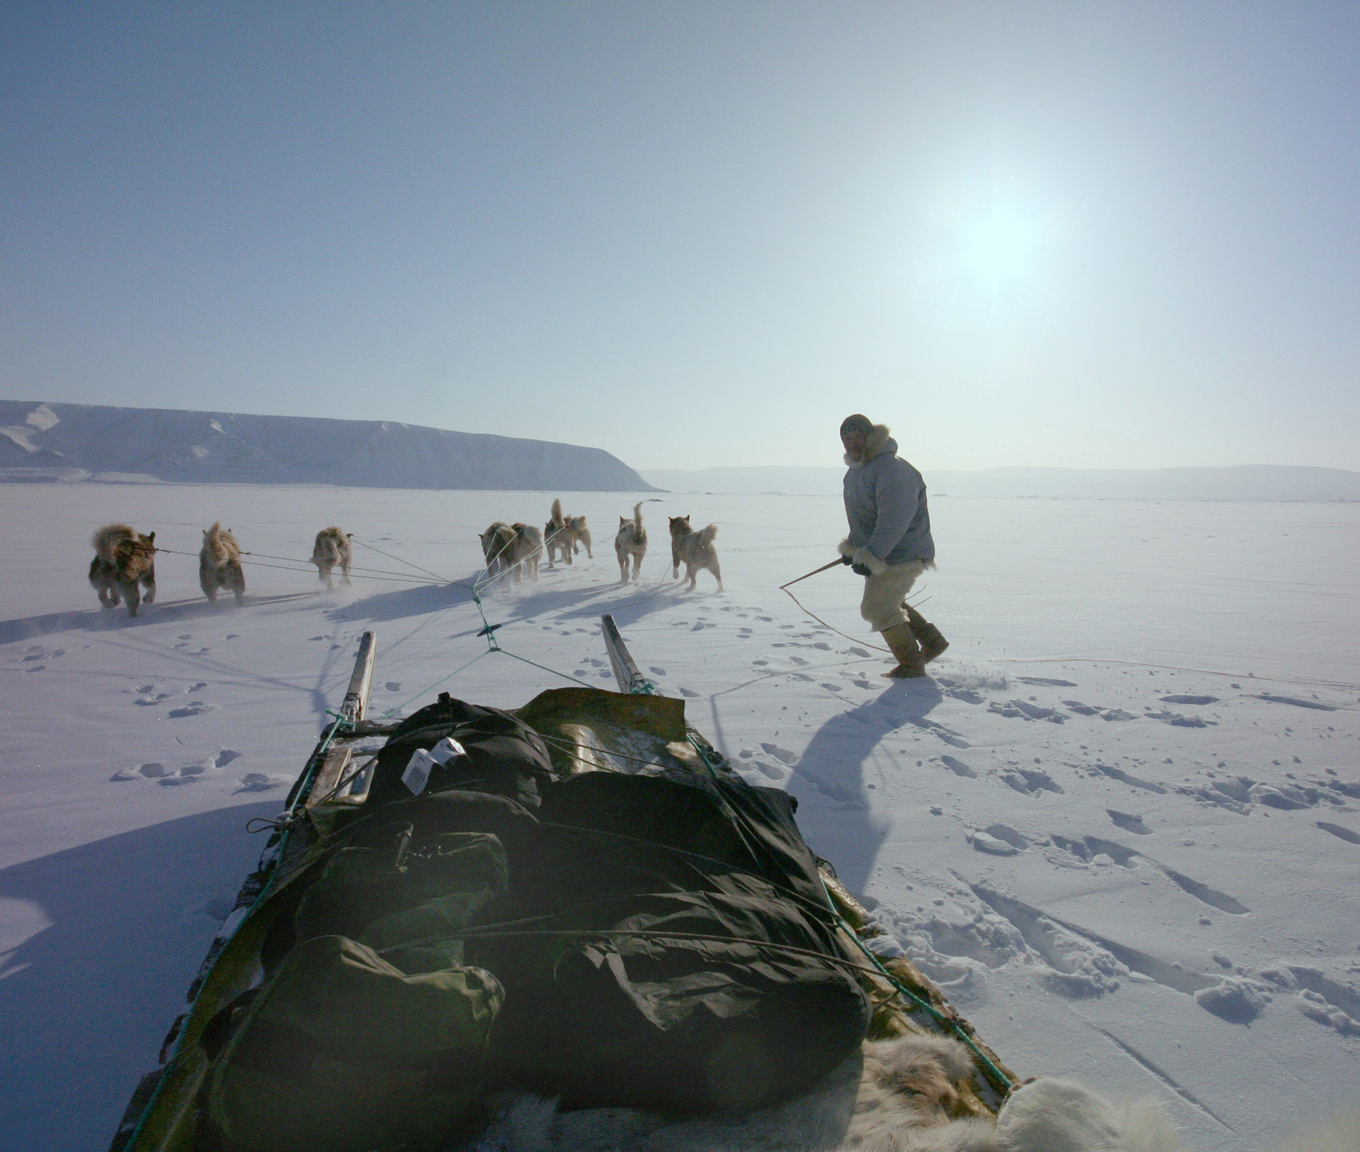 A seal hunter prepares to jump back on his the sled in Qanaaq, Greenland. ADACIS data includes local traditional knowledge shared by Arctic residents and indigenous people. Cedit: Andy Mahoney, NSIDC